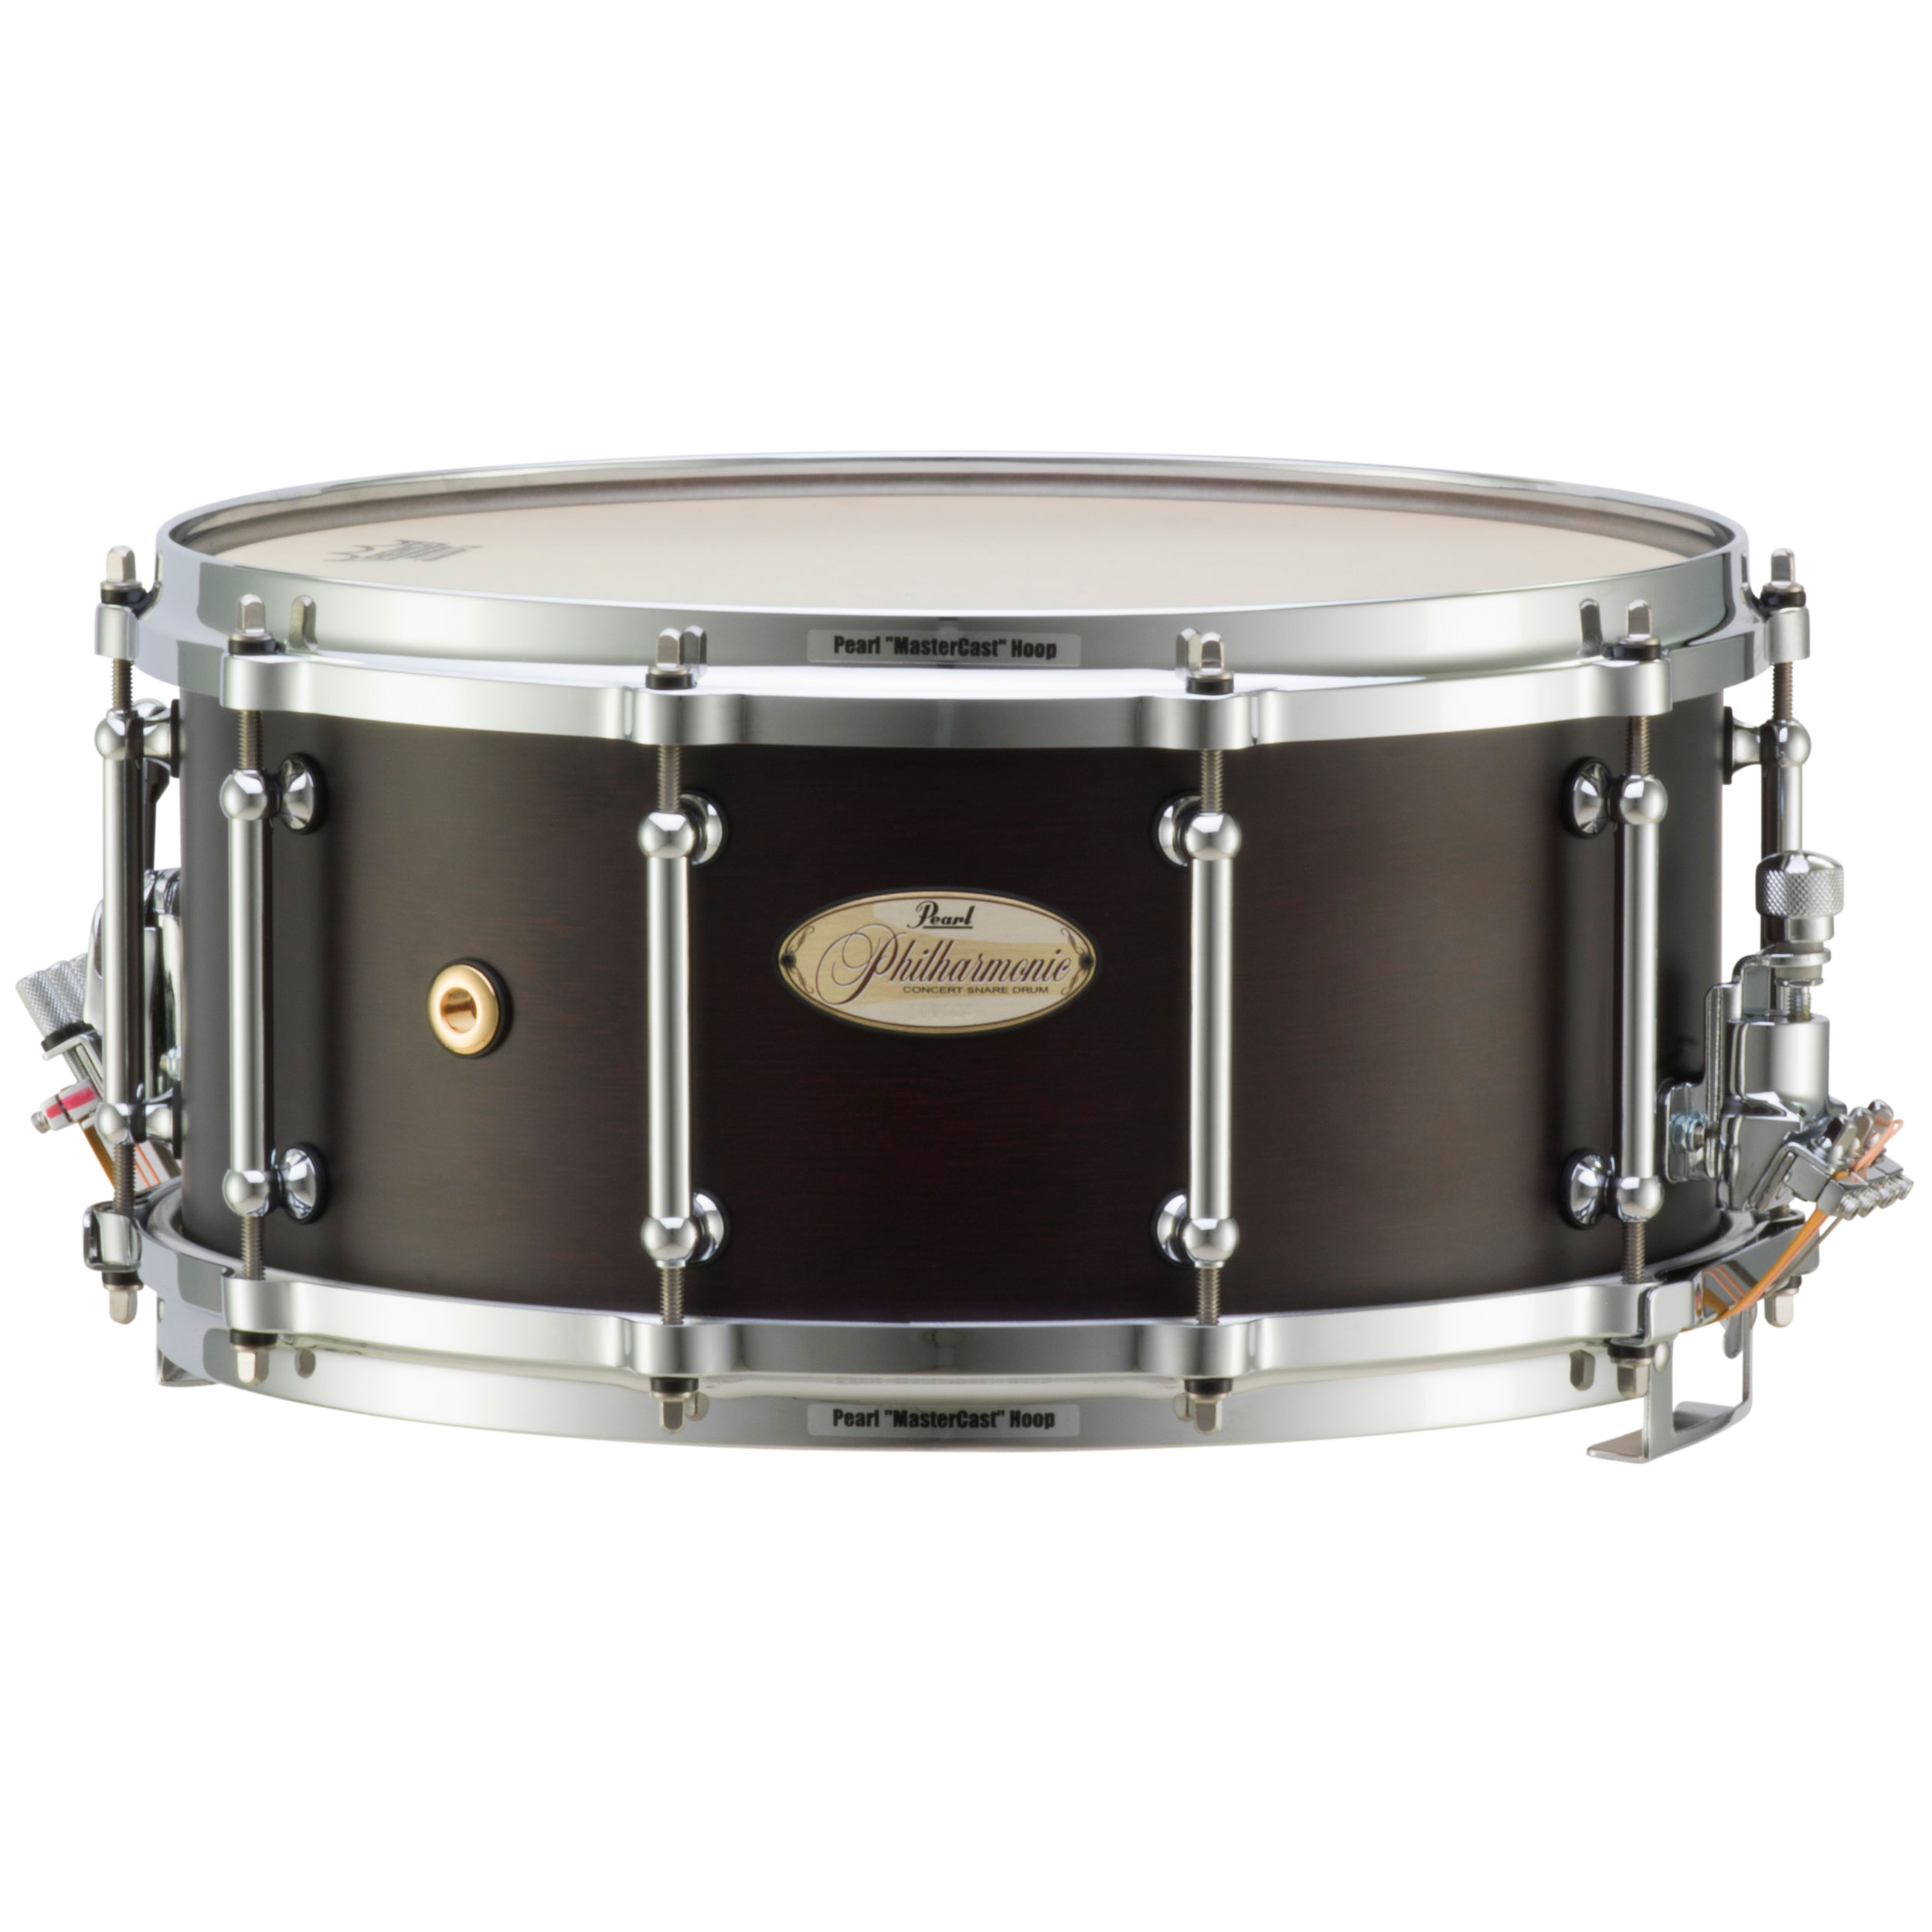 """Pearl 14"""" x 6.5"""" Philharmonic 4-Ply African Mahogany Concert Snare Drum in Matte Walnut"""